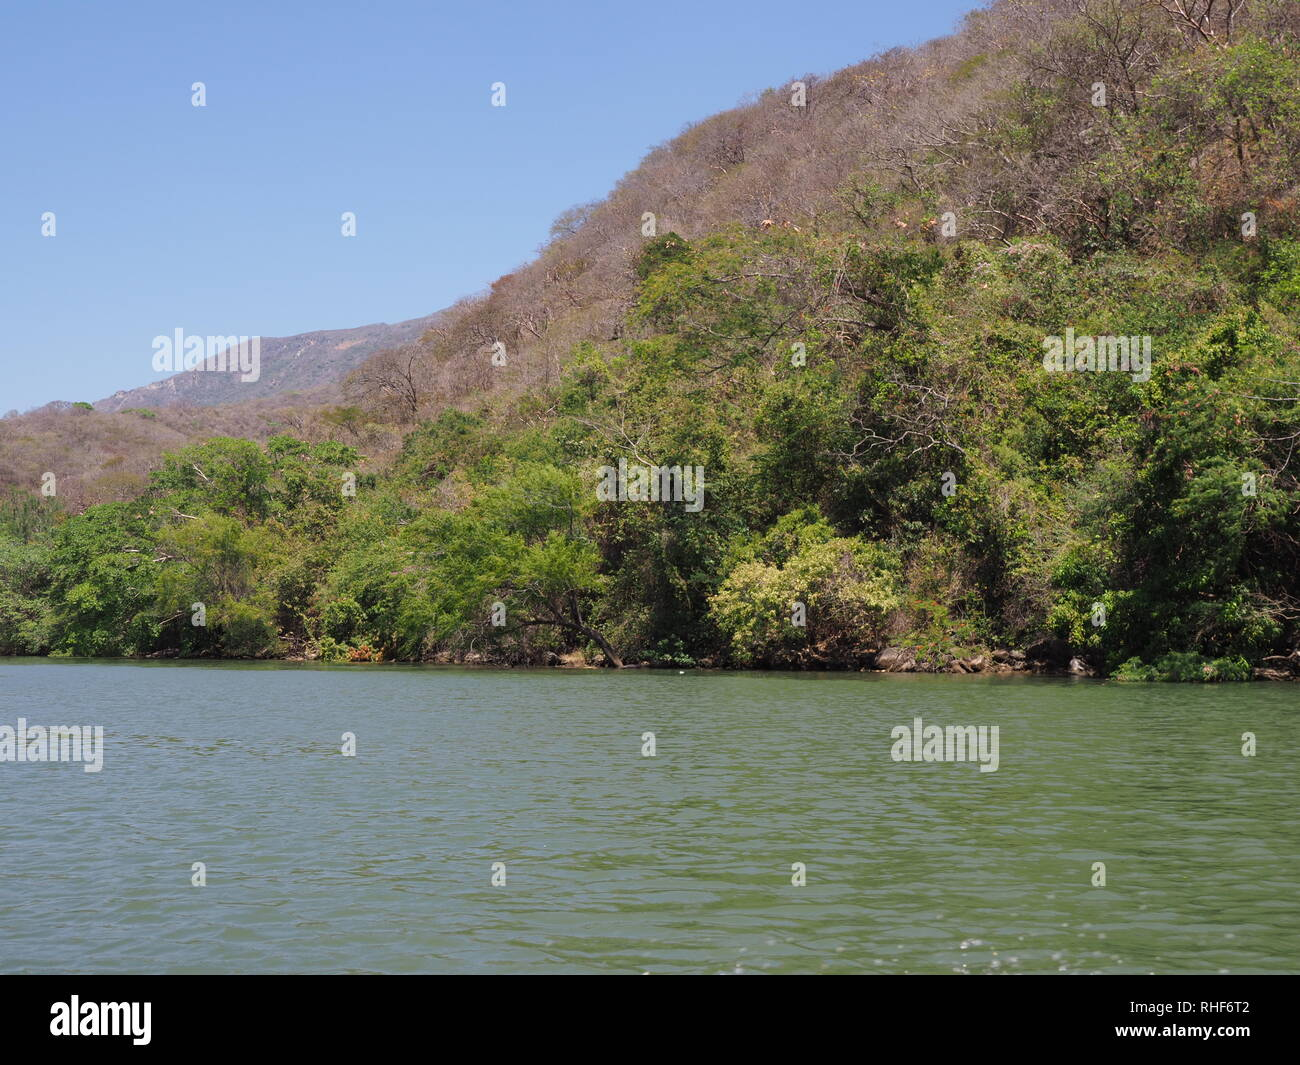 Tropical slope of Sumidero canyon at Grijalva river landscape in Chiapas state in Mexico - Stock Image